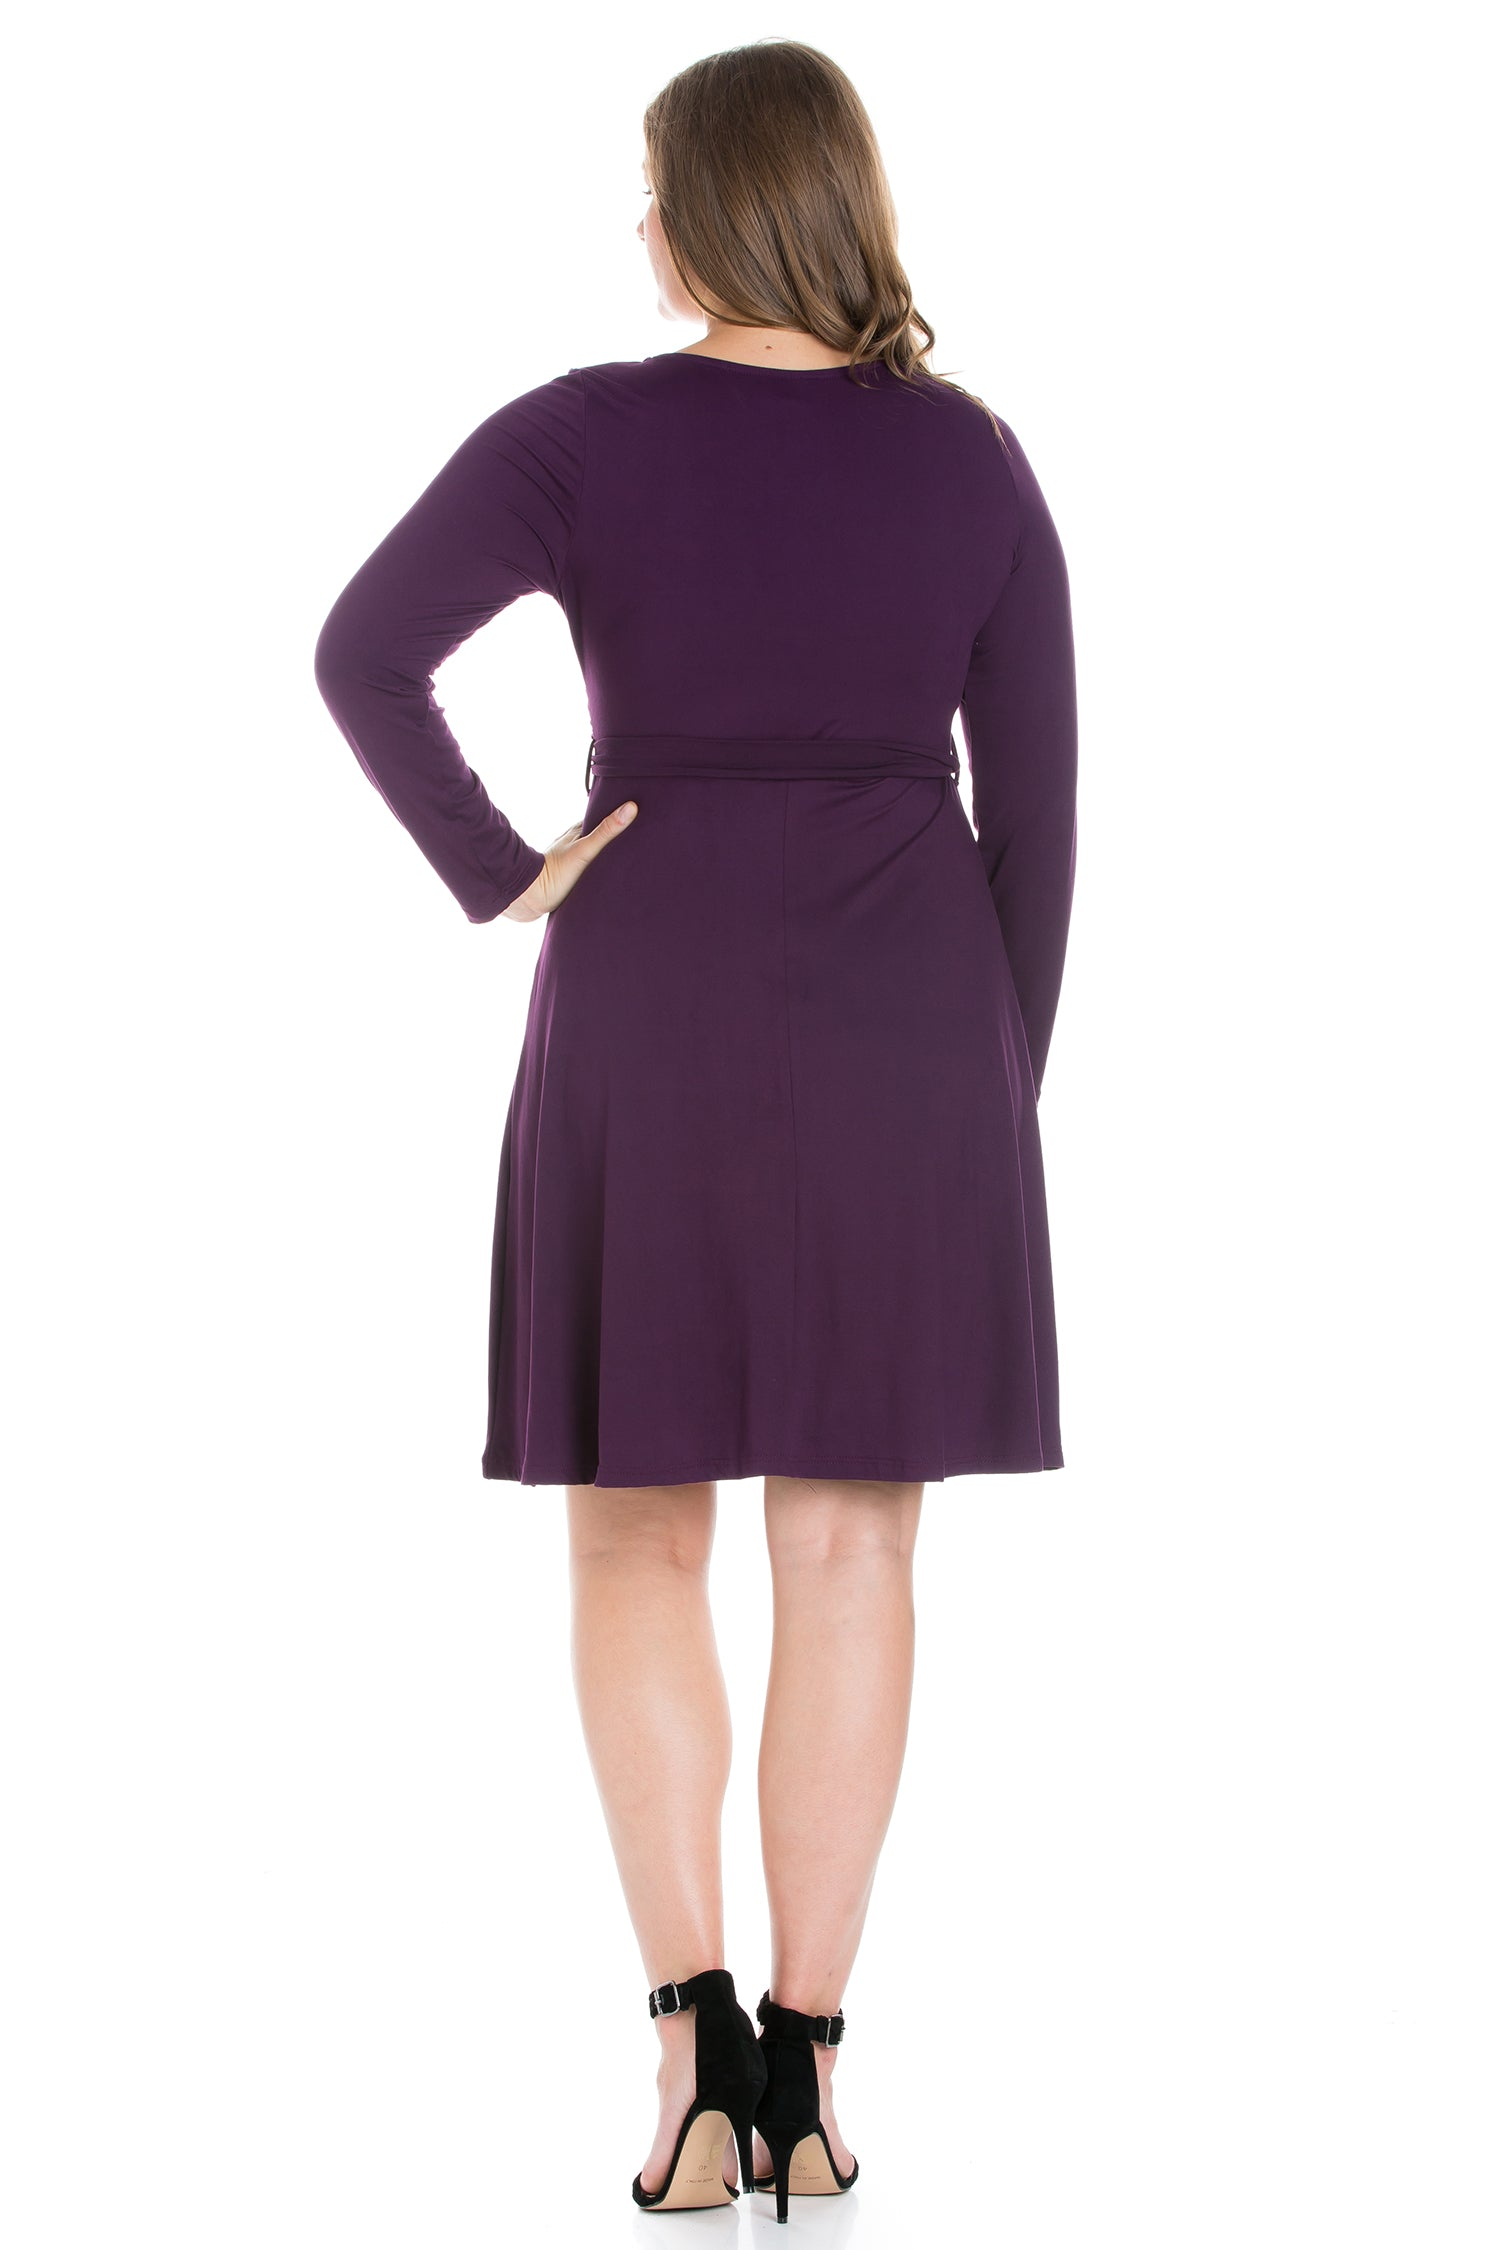 24seven Comfort Apparel Chic V-Neck Long Sleeve Belted Plus Size Dress